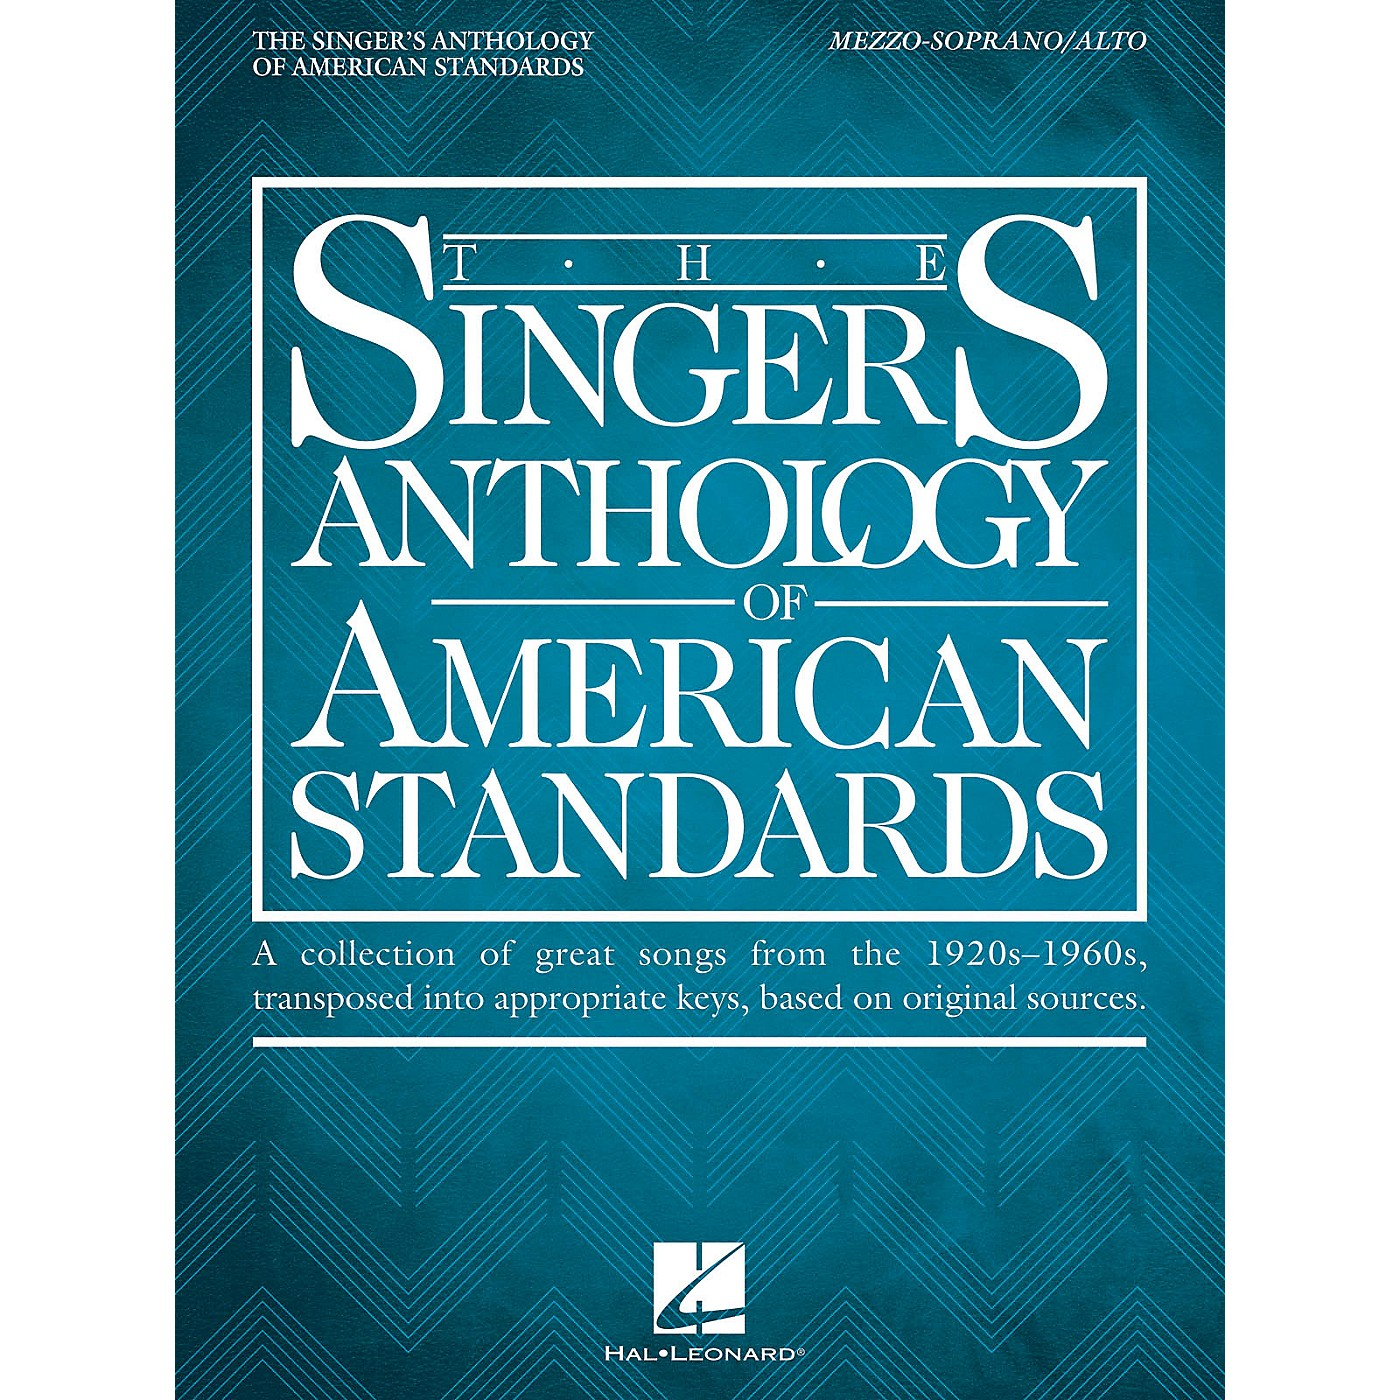 Hal Leonard The Singer's Anthology of American Standards Mezzo-Soprano/Alto Edition Vocal Songbook thumbnail